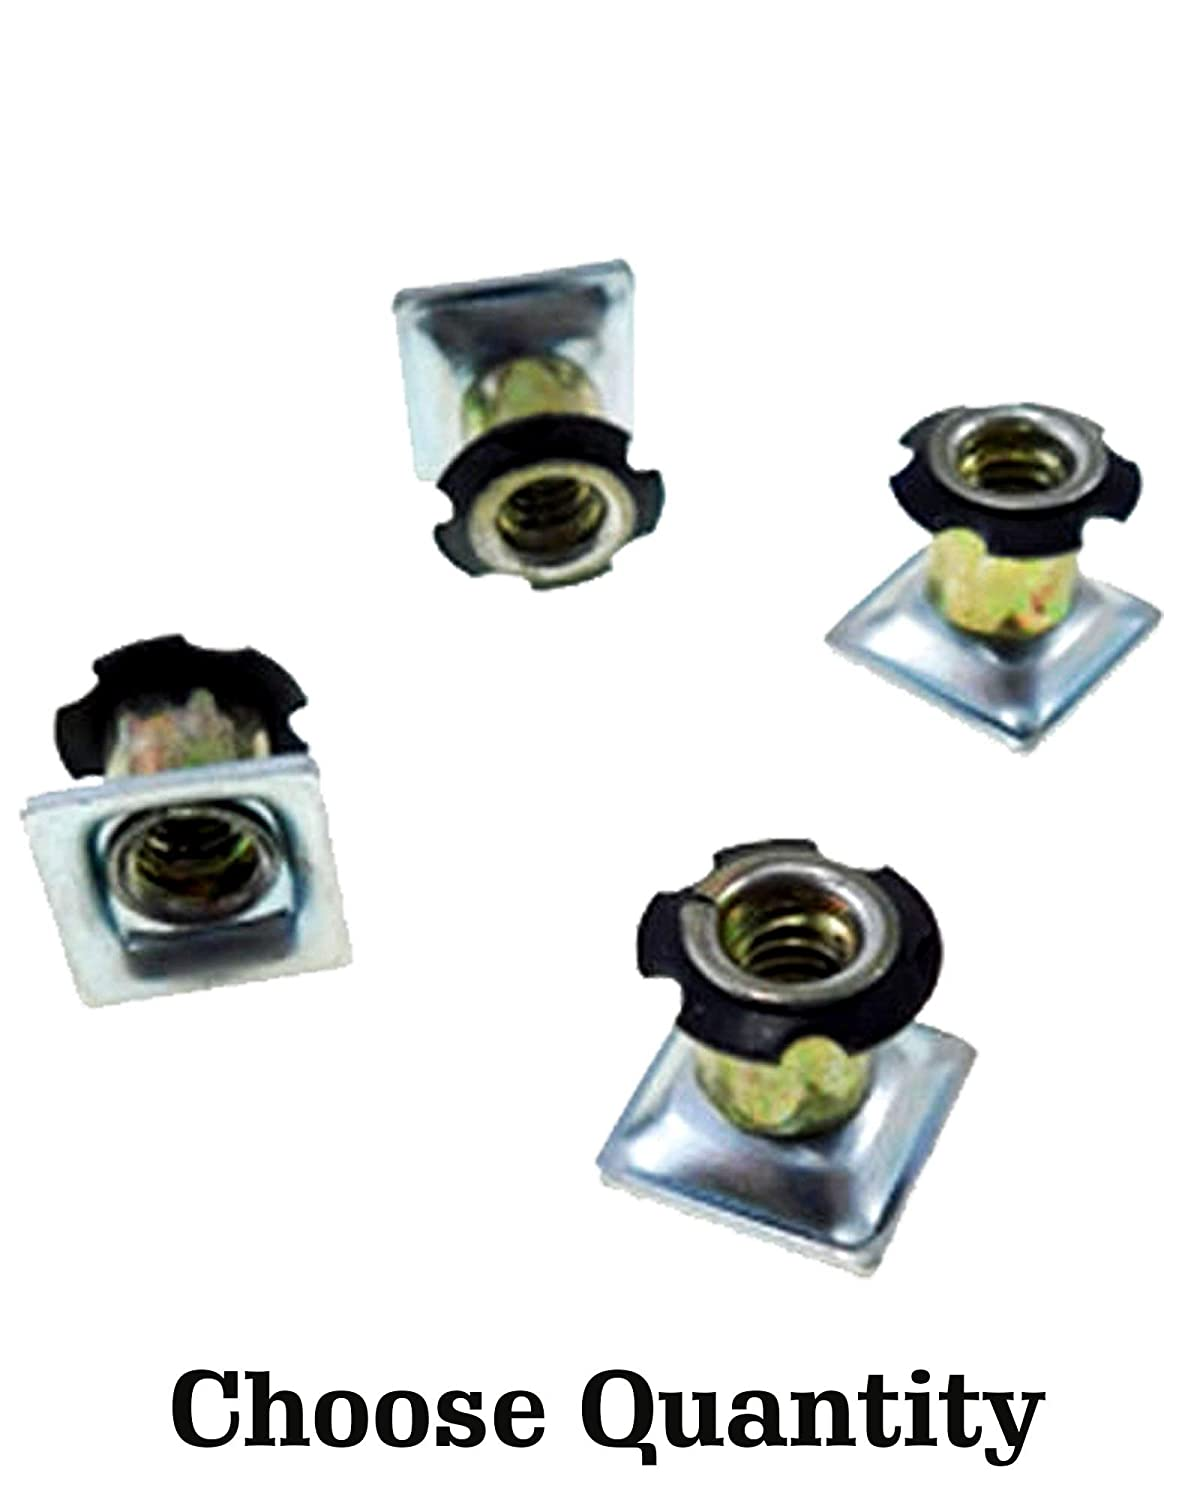 O.D. 4 Threaded Inserts for Square Tubing Square Tubing Insert 1//4-20 Threads Square Threaded Tube Inserts Metal Threaded Star Type Insert 1